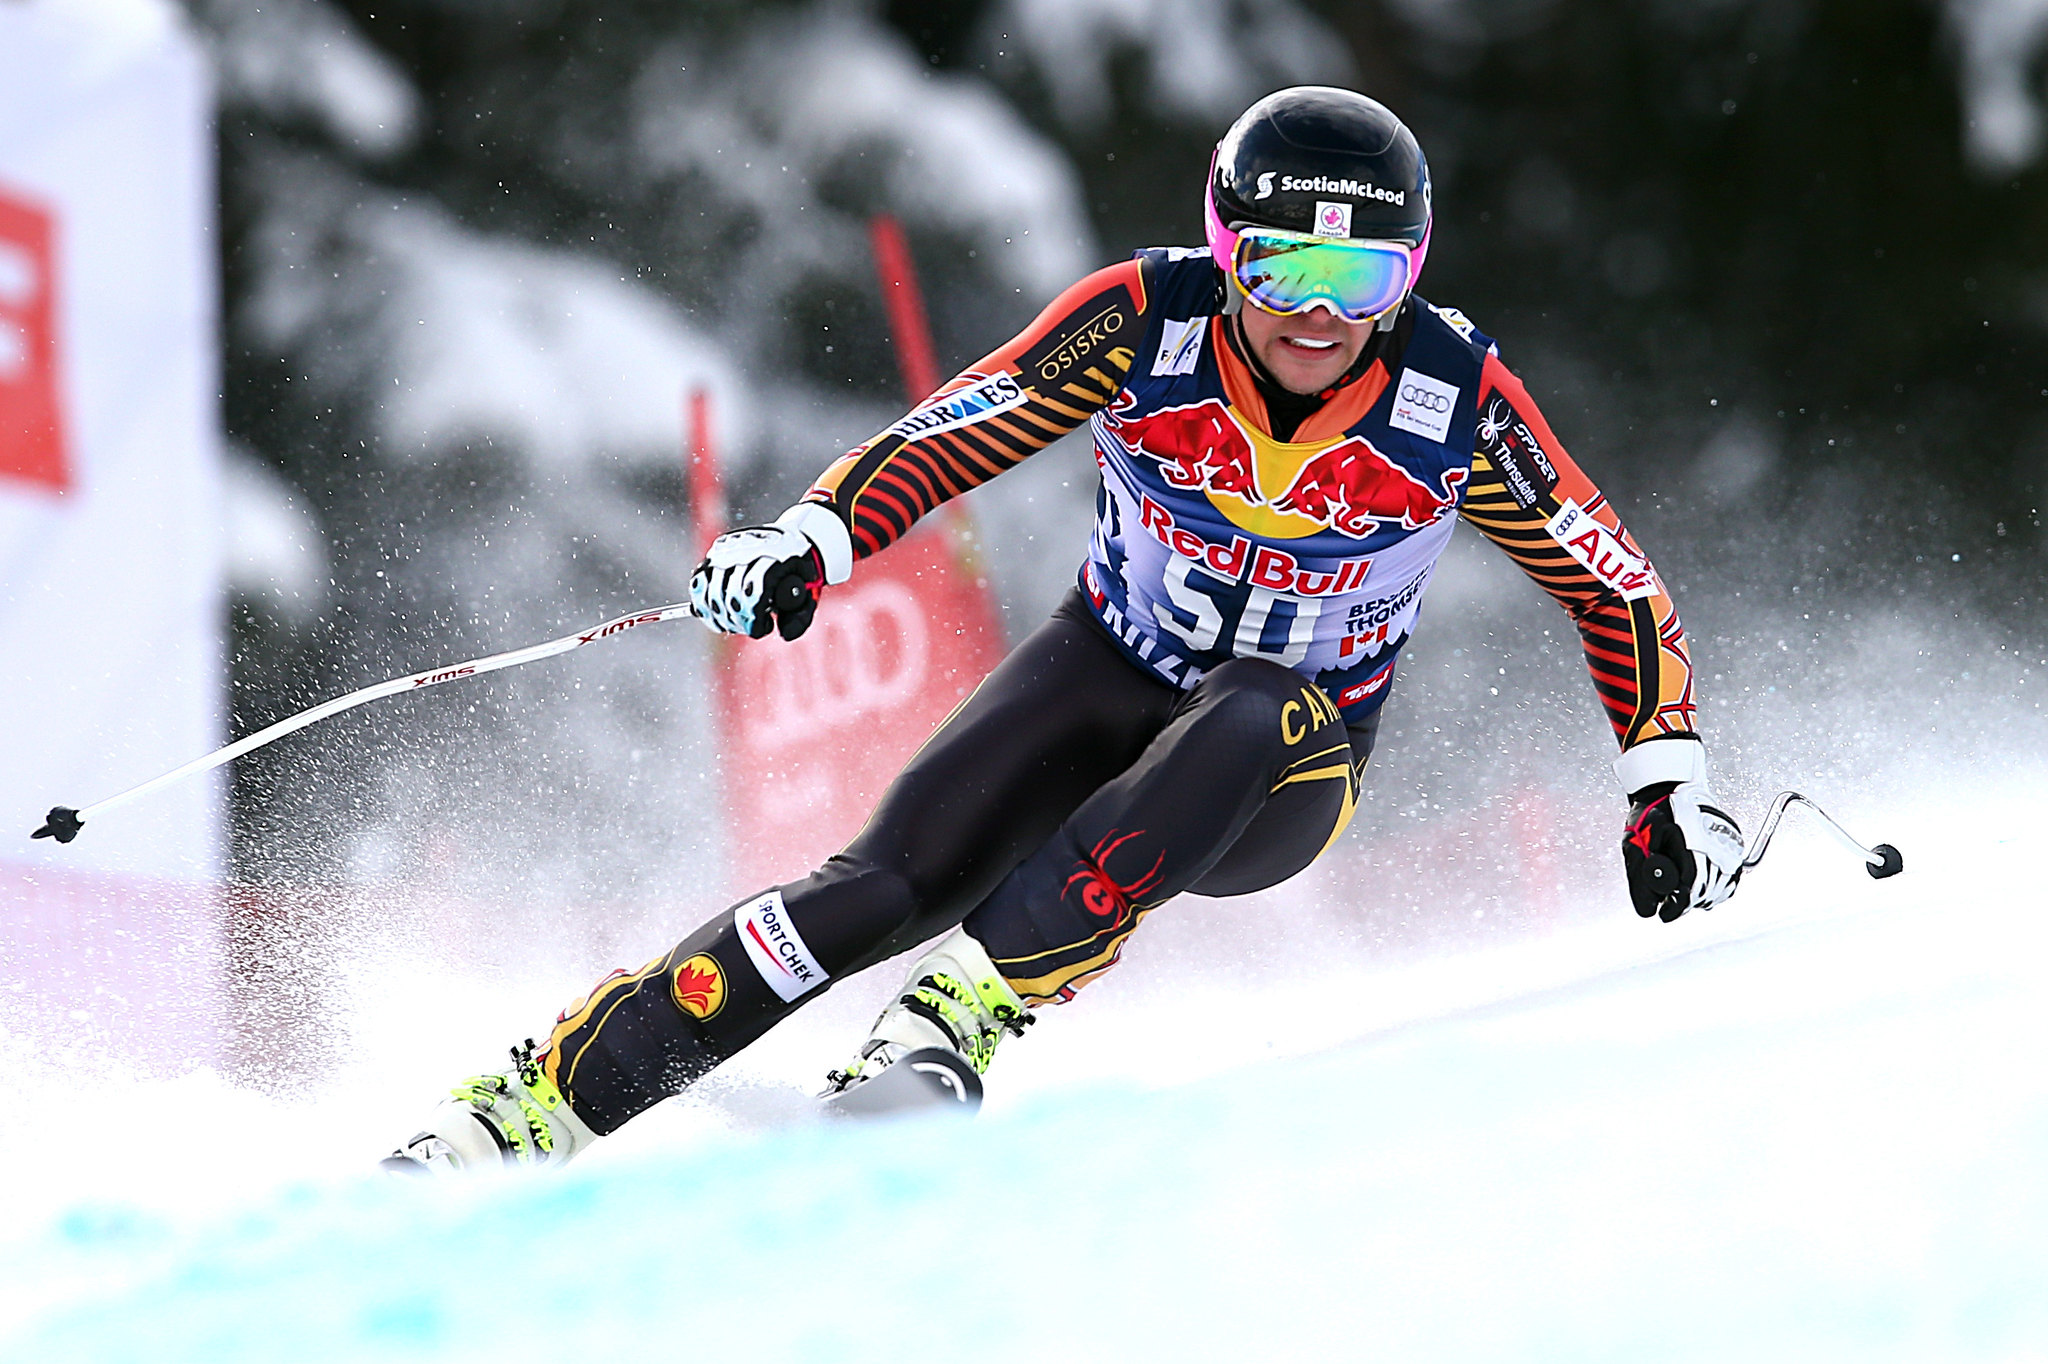 Ben Thomsen competes on the downhill track in Kitzbuehel, AUT